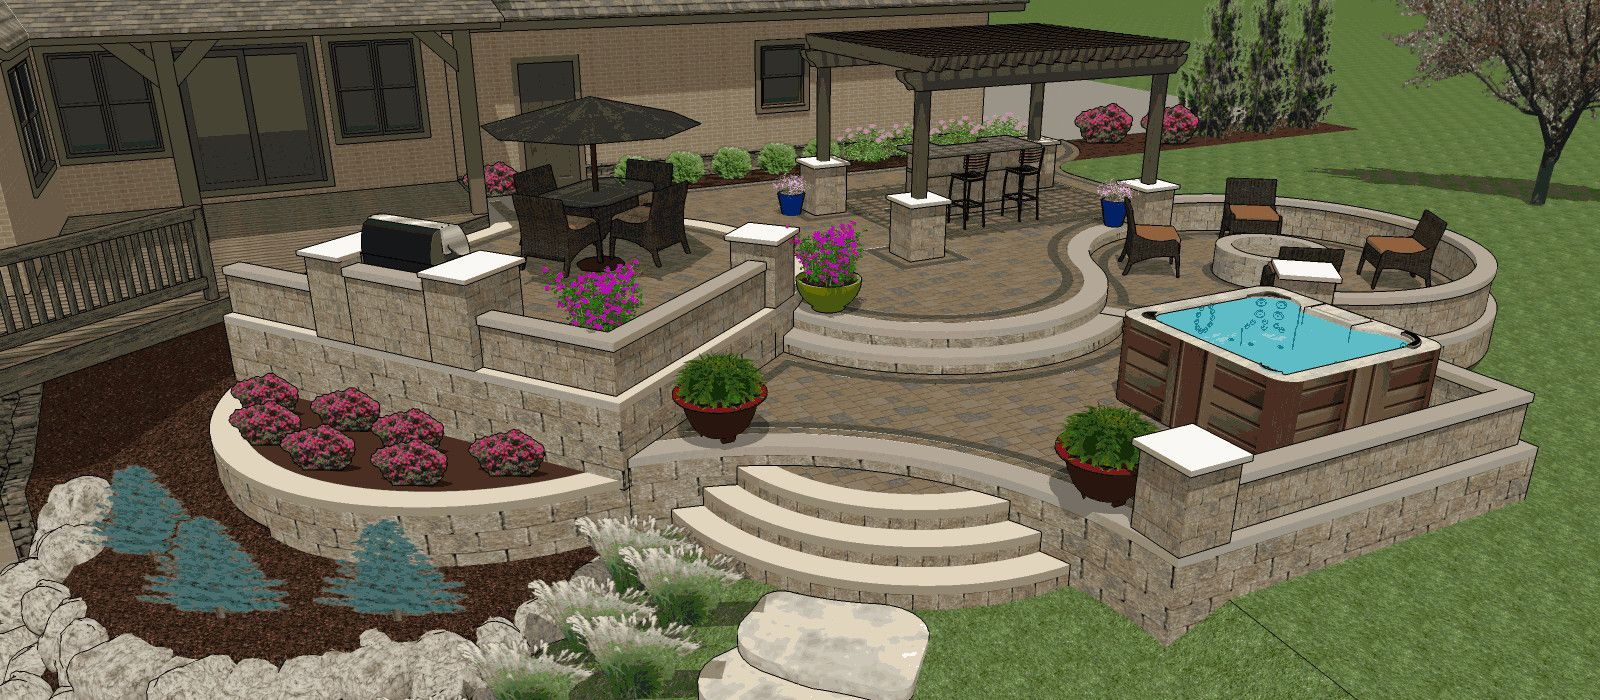 Patio Layout Designs Affordable Patio Designs For Your Backyard Mypatiodesign